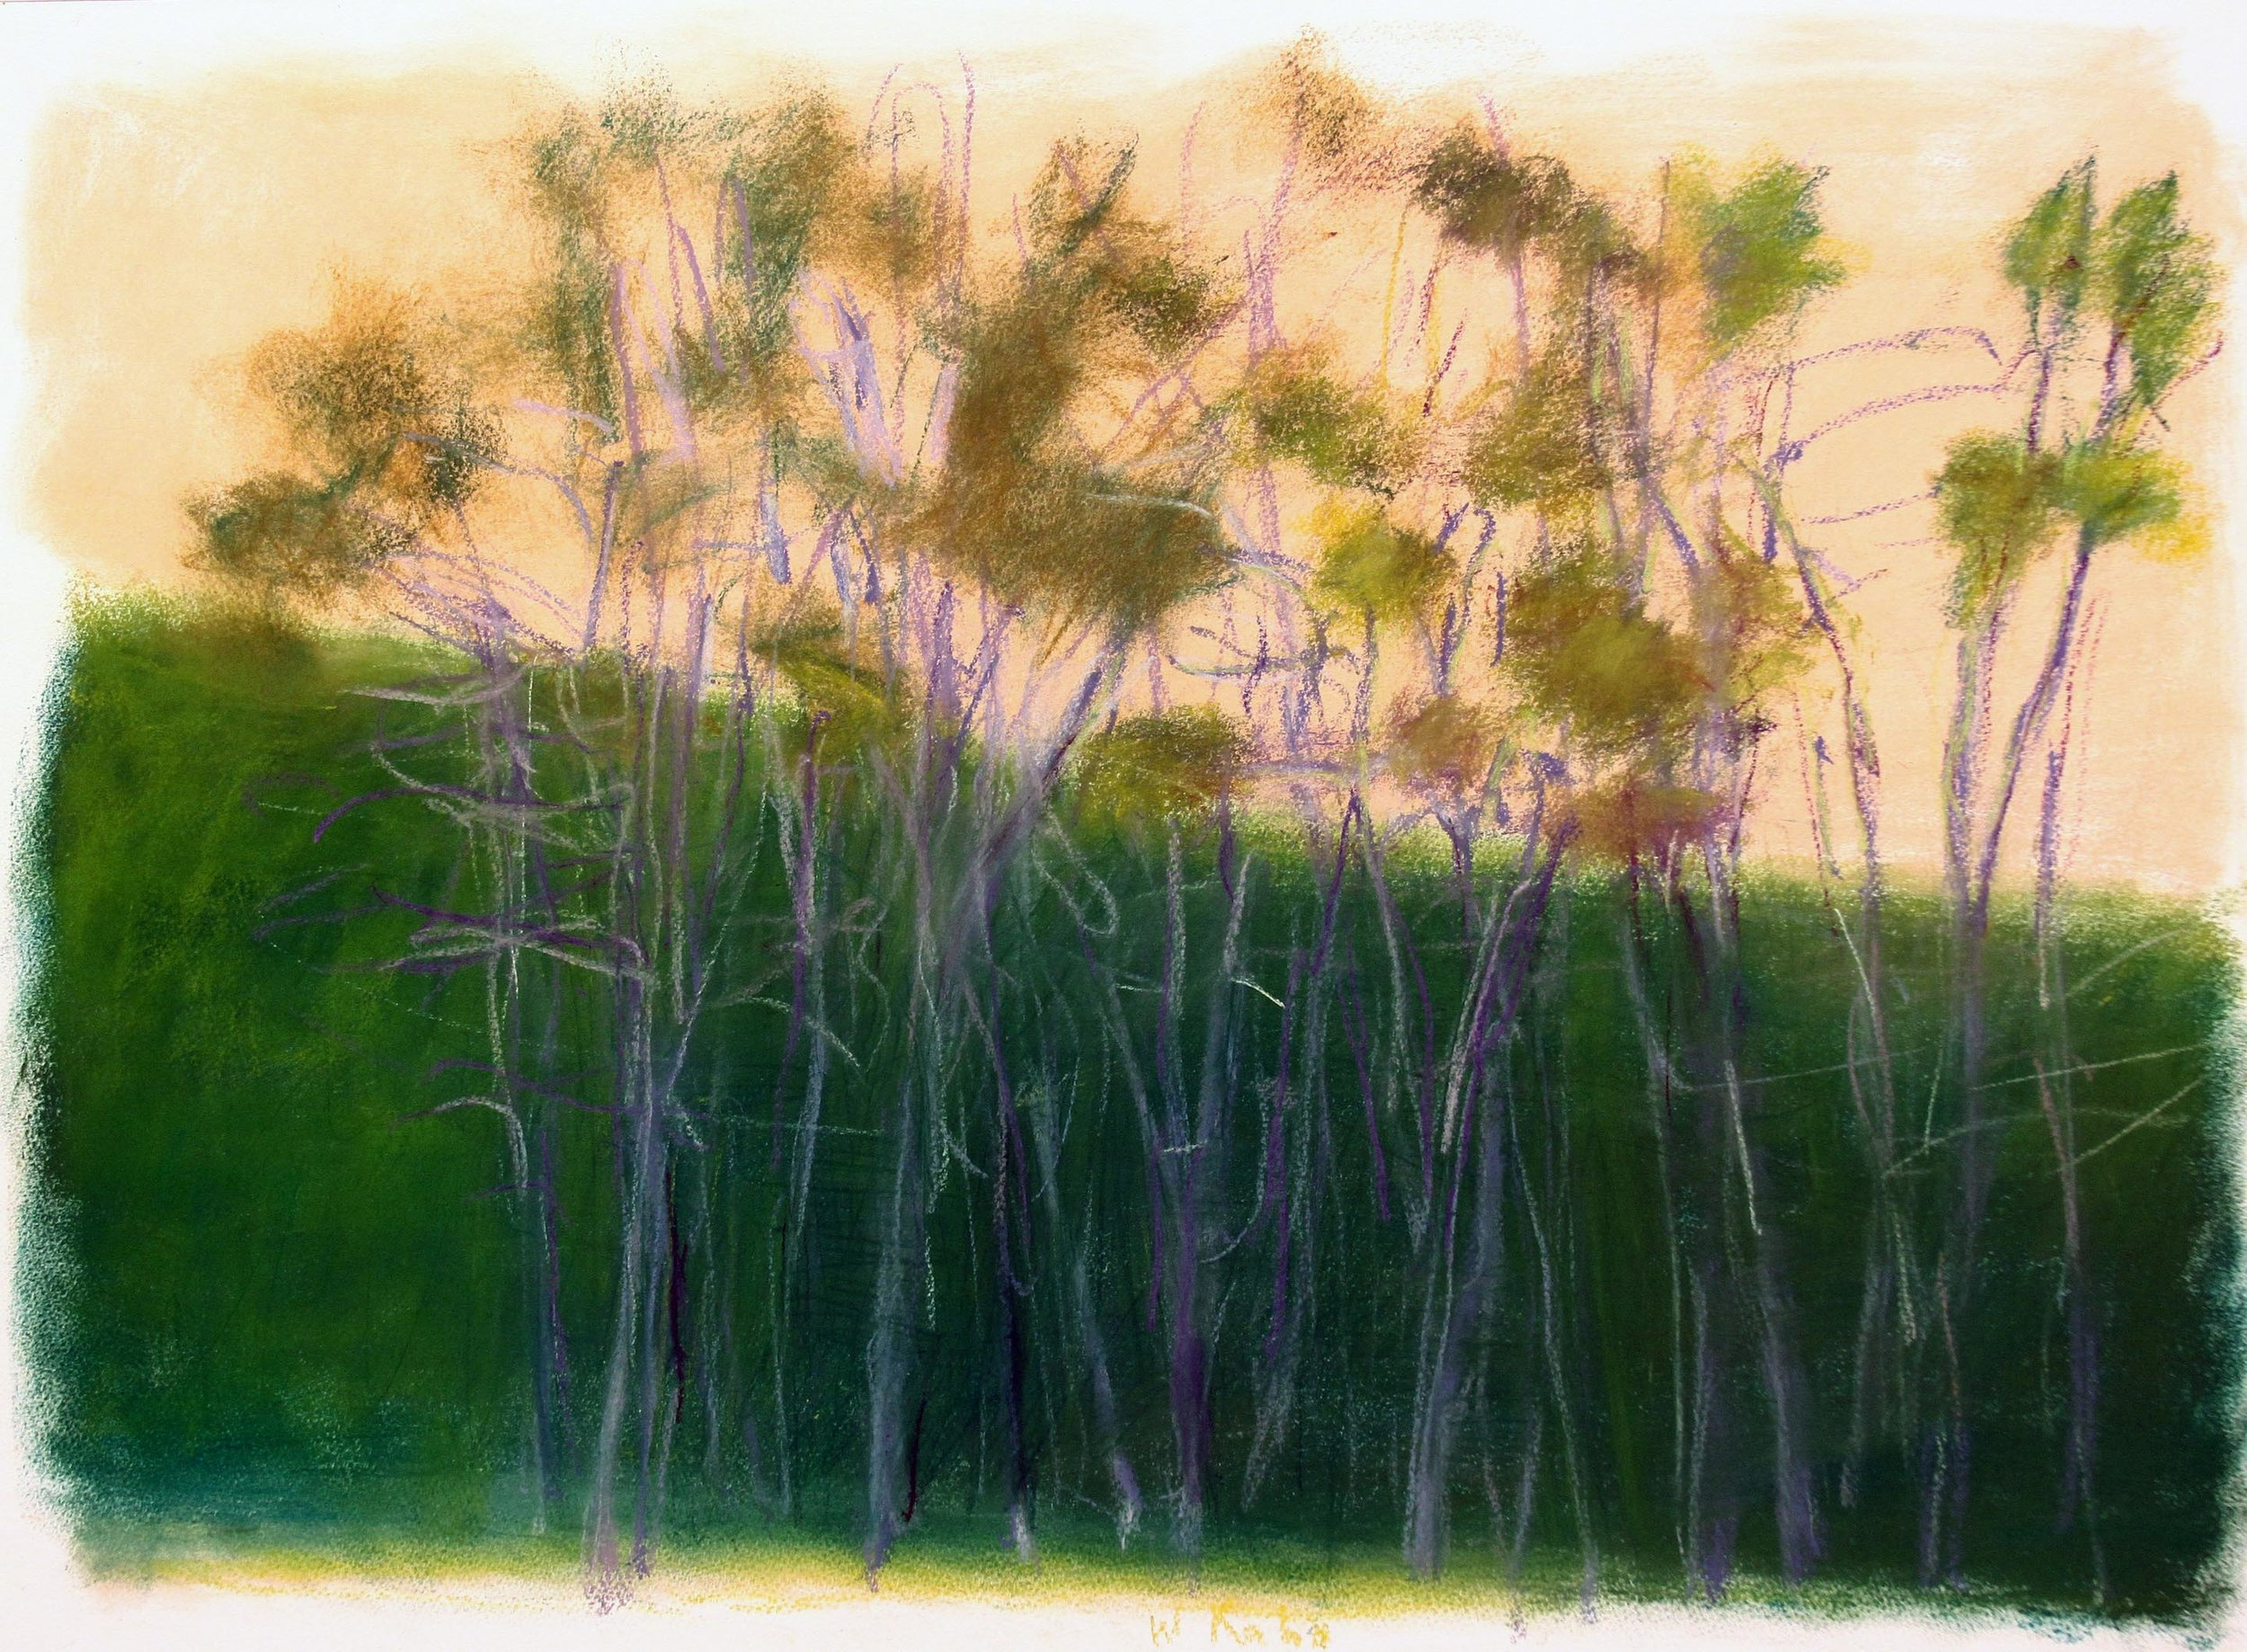 Sky the Color of Peach , 2010 Pastel on paper 22h x 30w inches